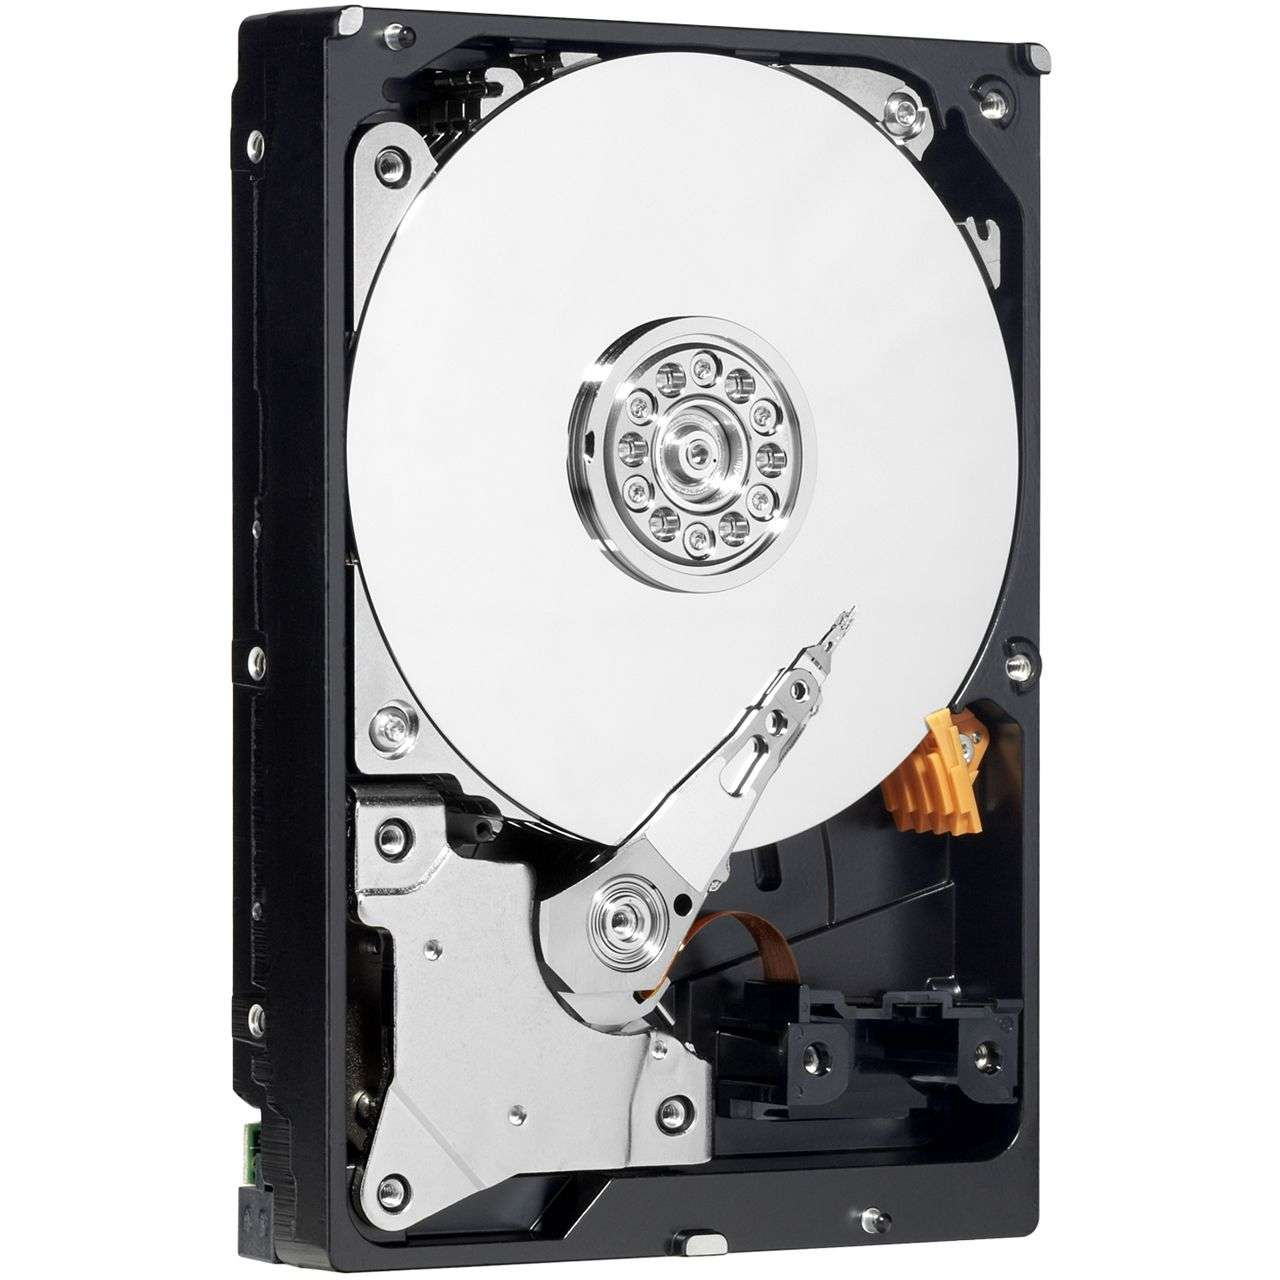 Western Digital 1TB 7200rpm SATA-600 64MB Black WD1003FZEX